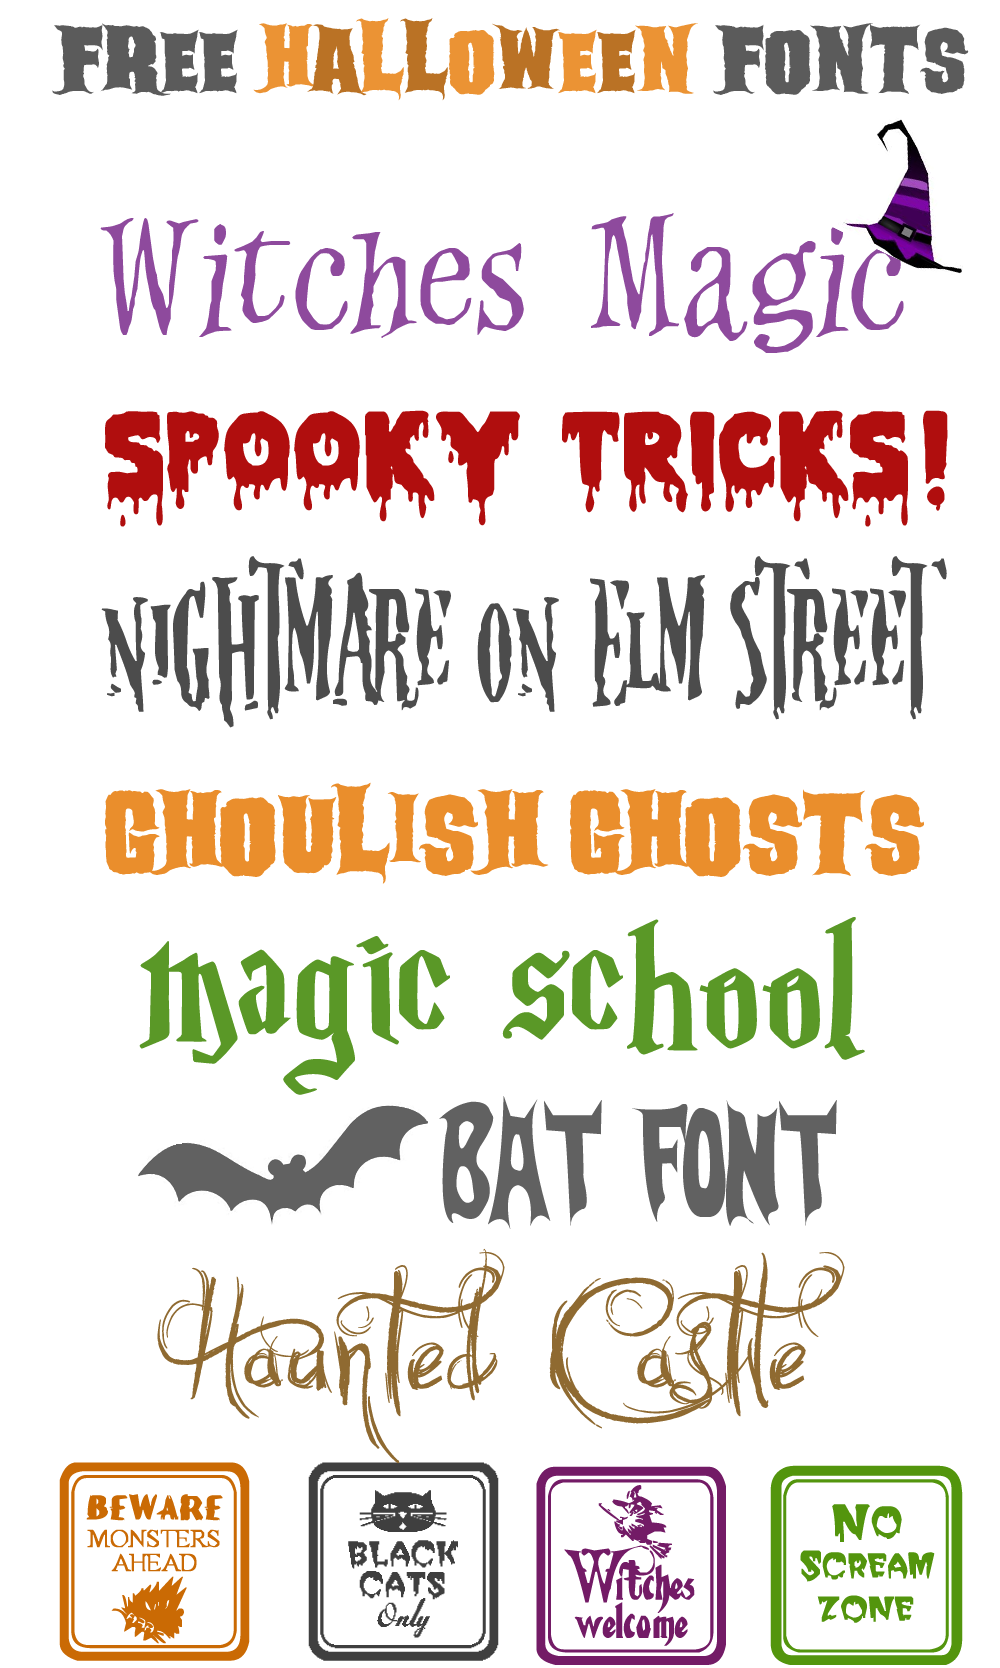 Free Halloween Fonts & Ways to Use Halloween Fonts